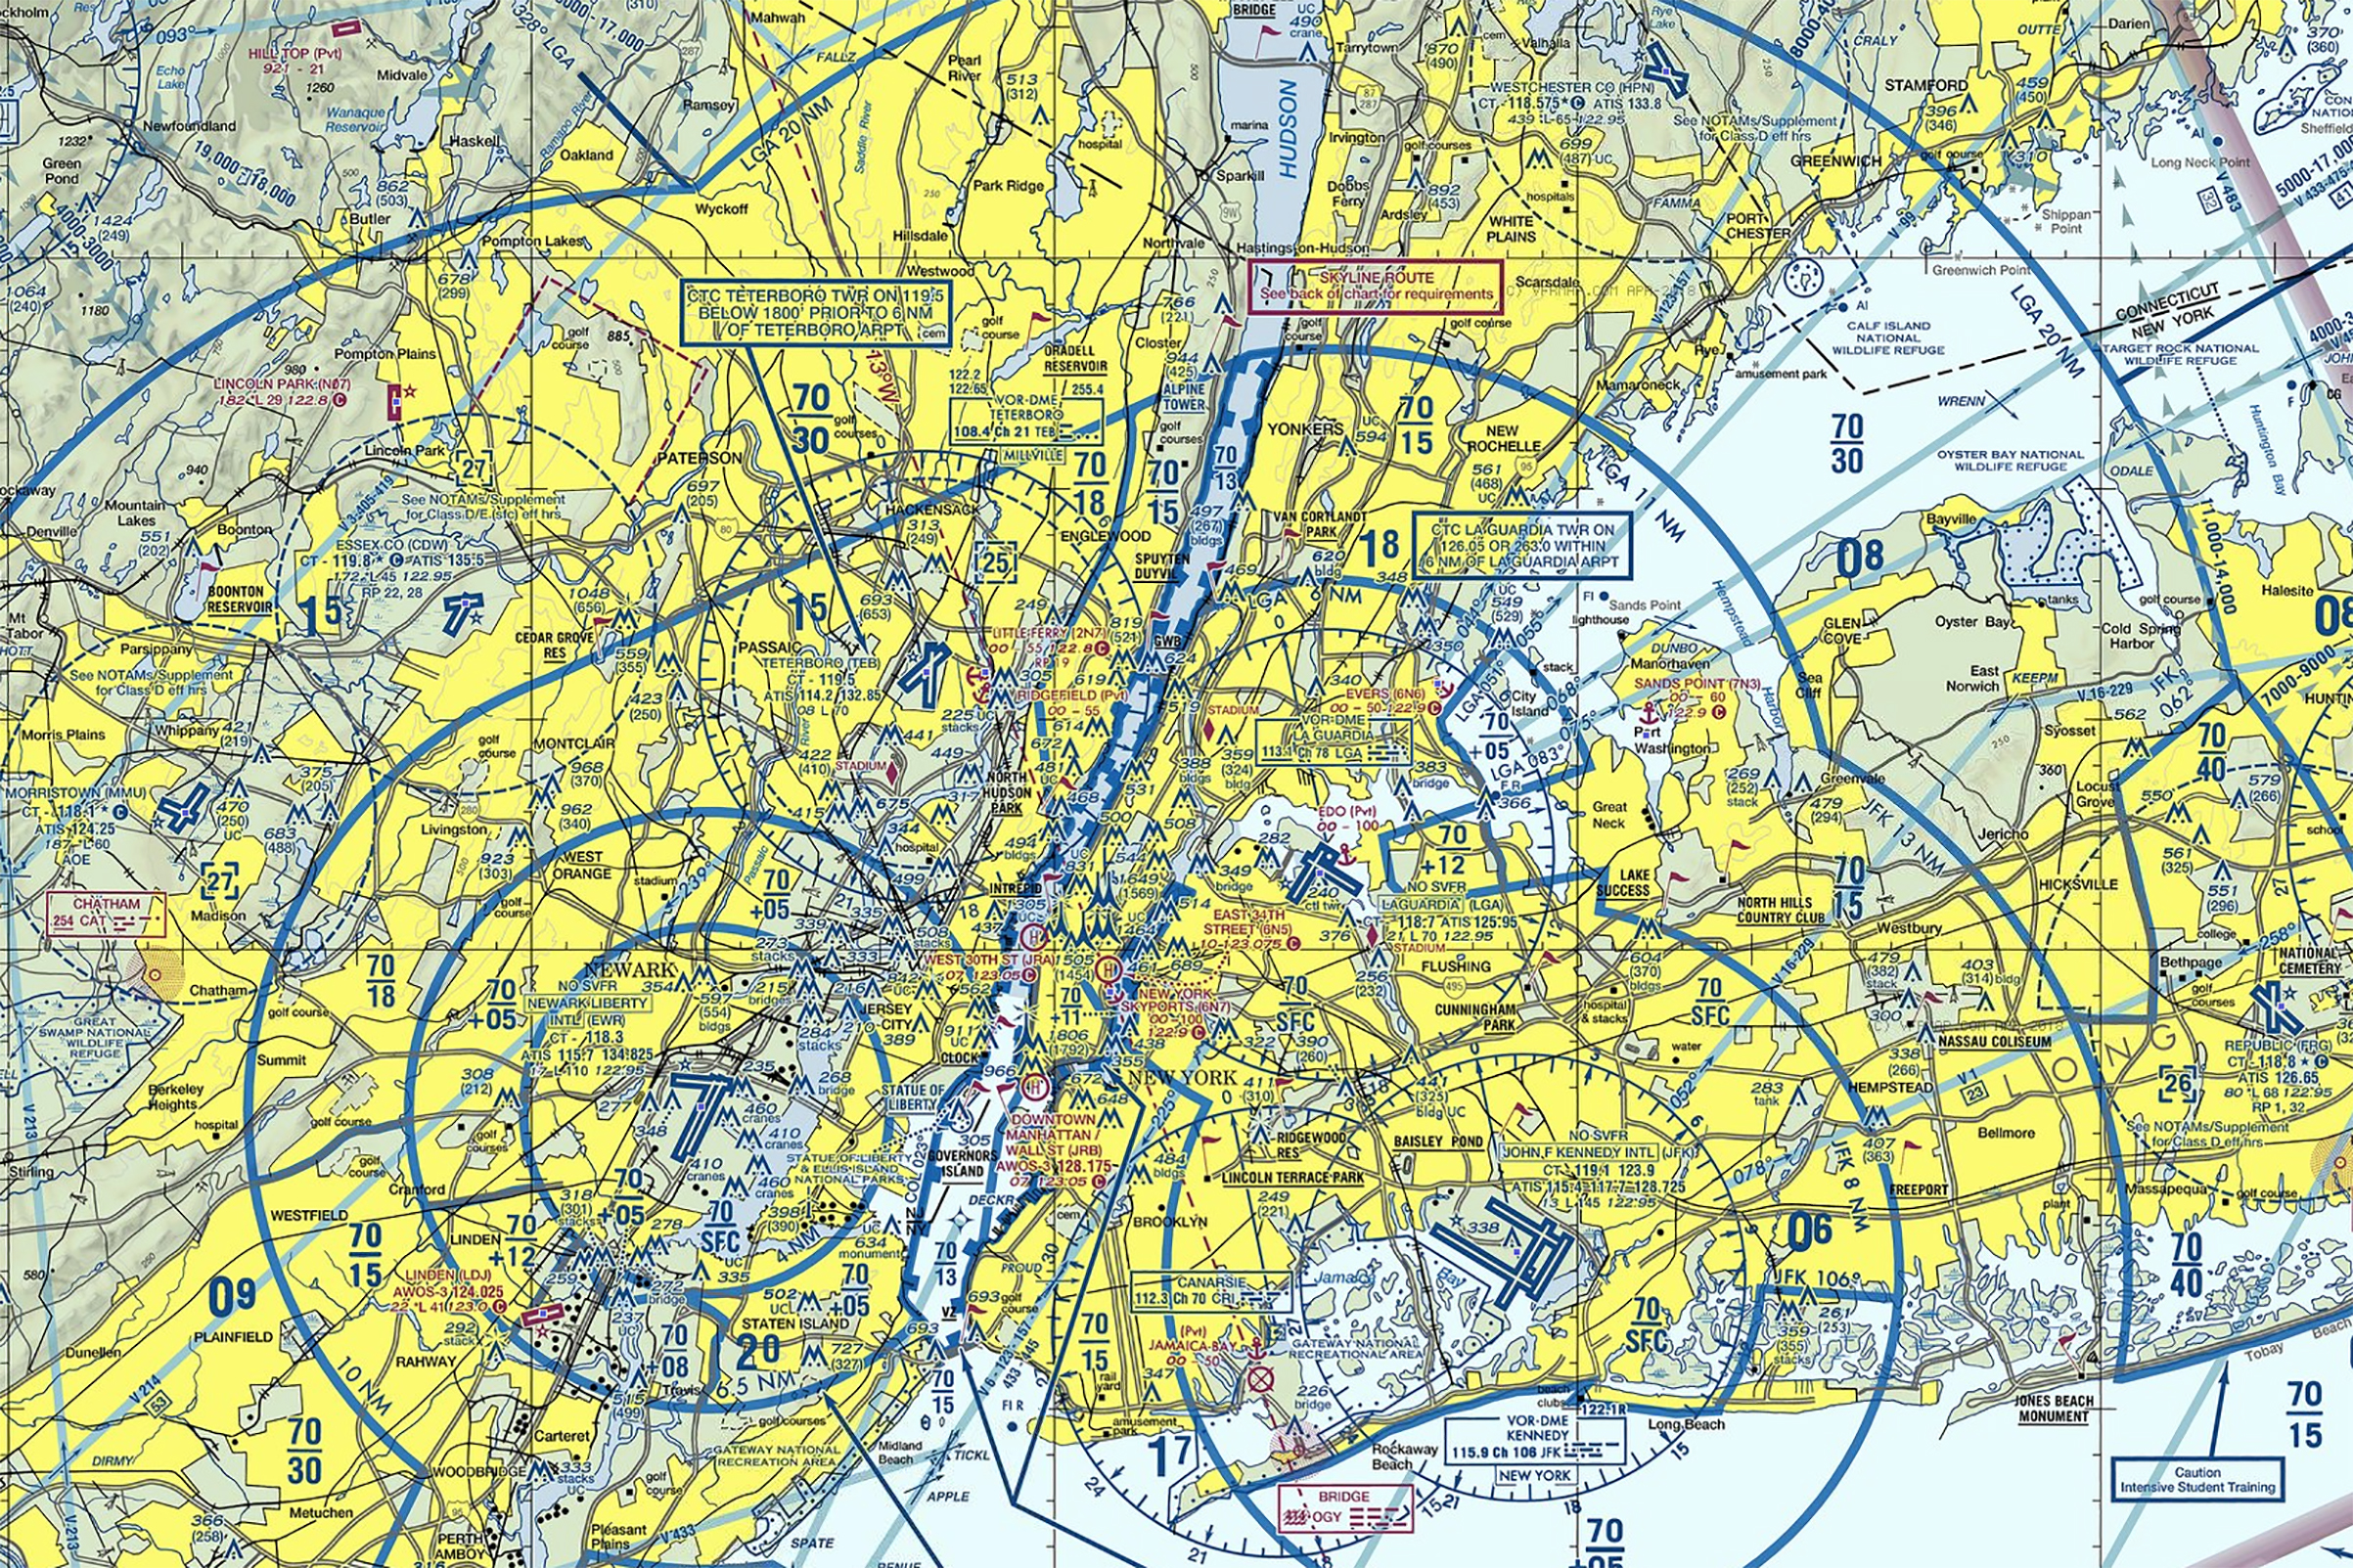 A sectional aeronautical chart of New York City showing the airspace above the city.